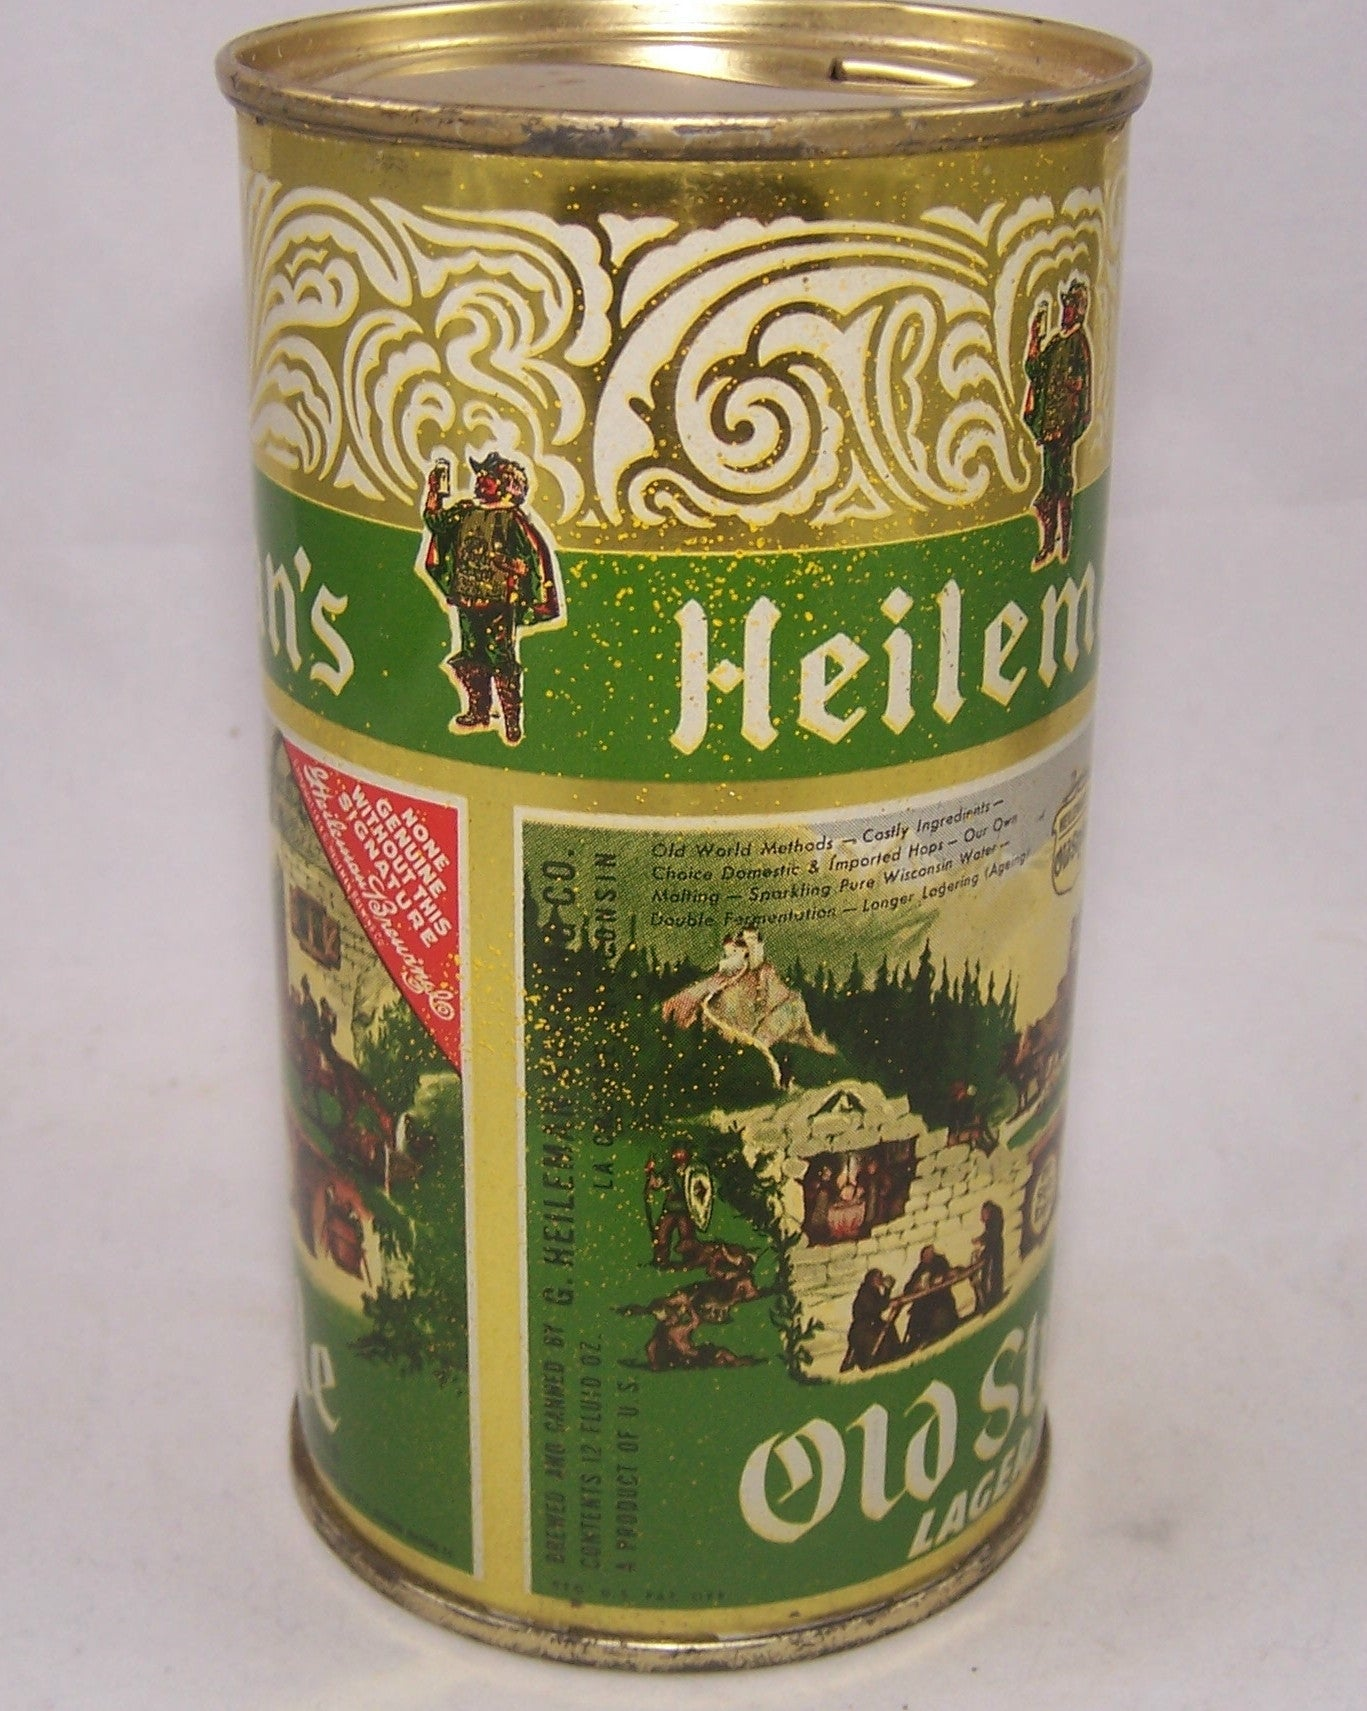 Heileman's Old Style Lager Beer, USBC 108-14, Grade 1 to 1/1+ Sold on 05/23/17